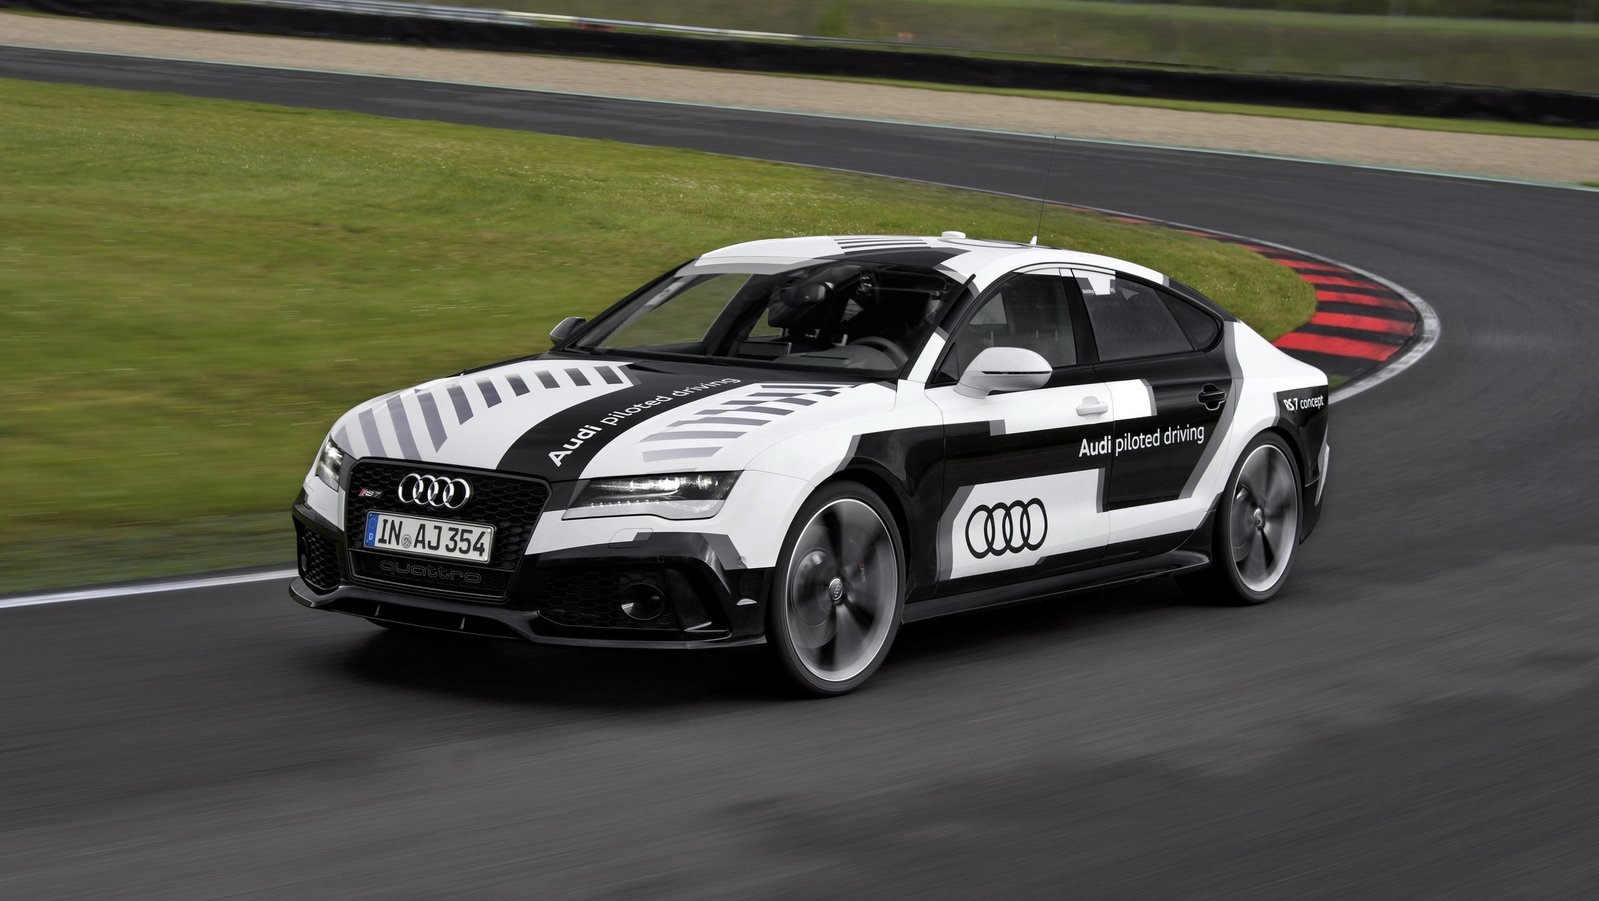 2015 audi rs7 piloted driving concept picture 572684 car review top speed. Black Bedroom Furniture Sets. Home Design Ideas